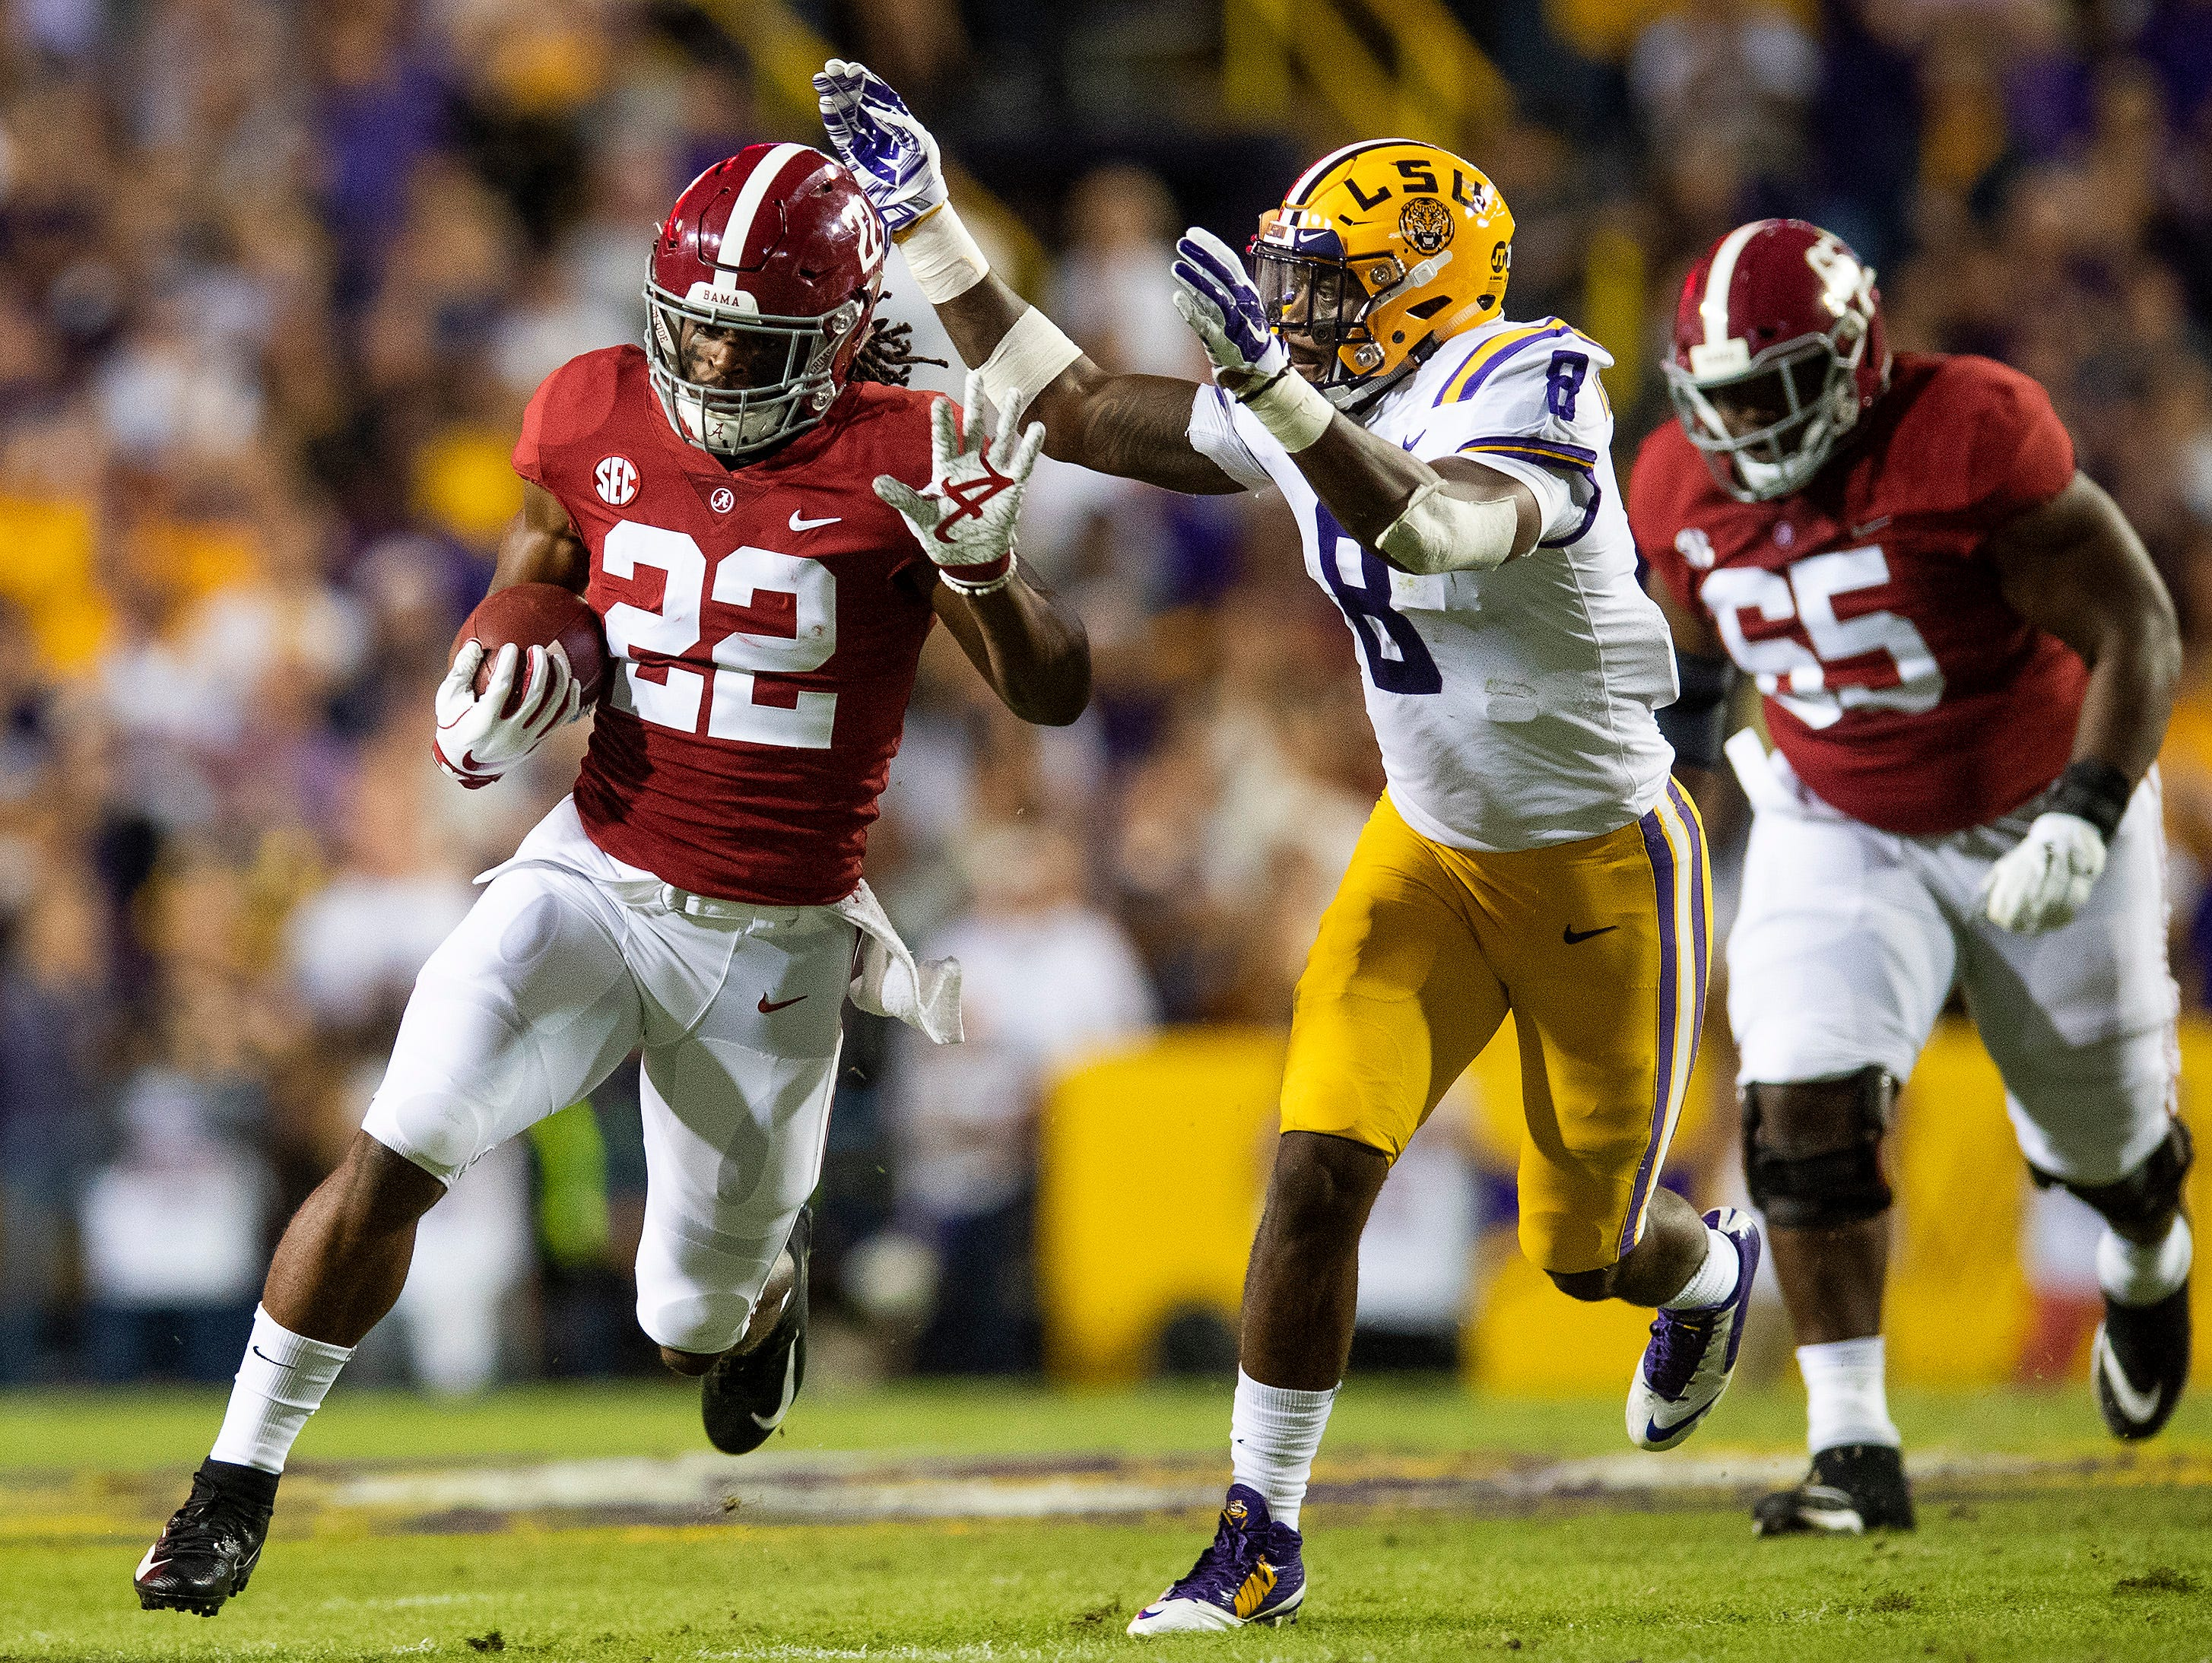 Alabama running back Najee Harris (22) eludes Louisiana State University linebacker Patrick Queen (8) in first half action at Tiger Stadium in Baton Rouge, La., on Saturday November 3, 2018.